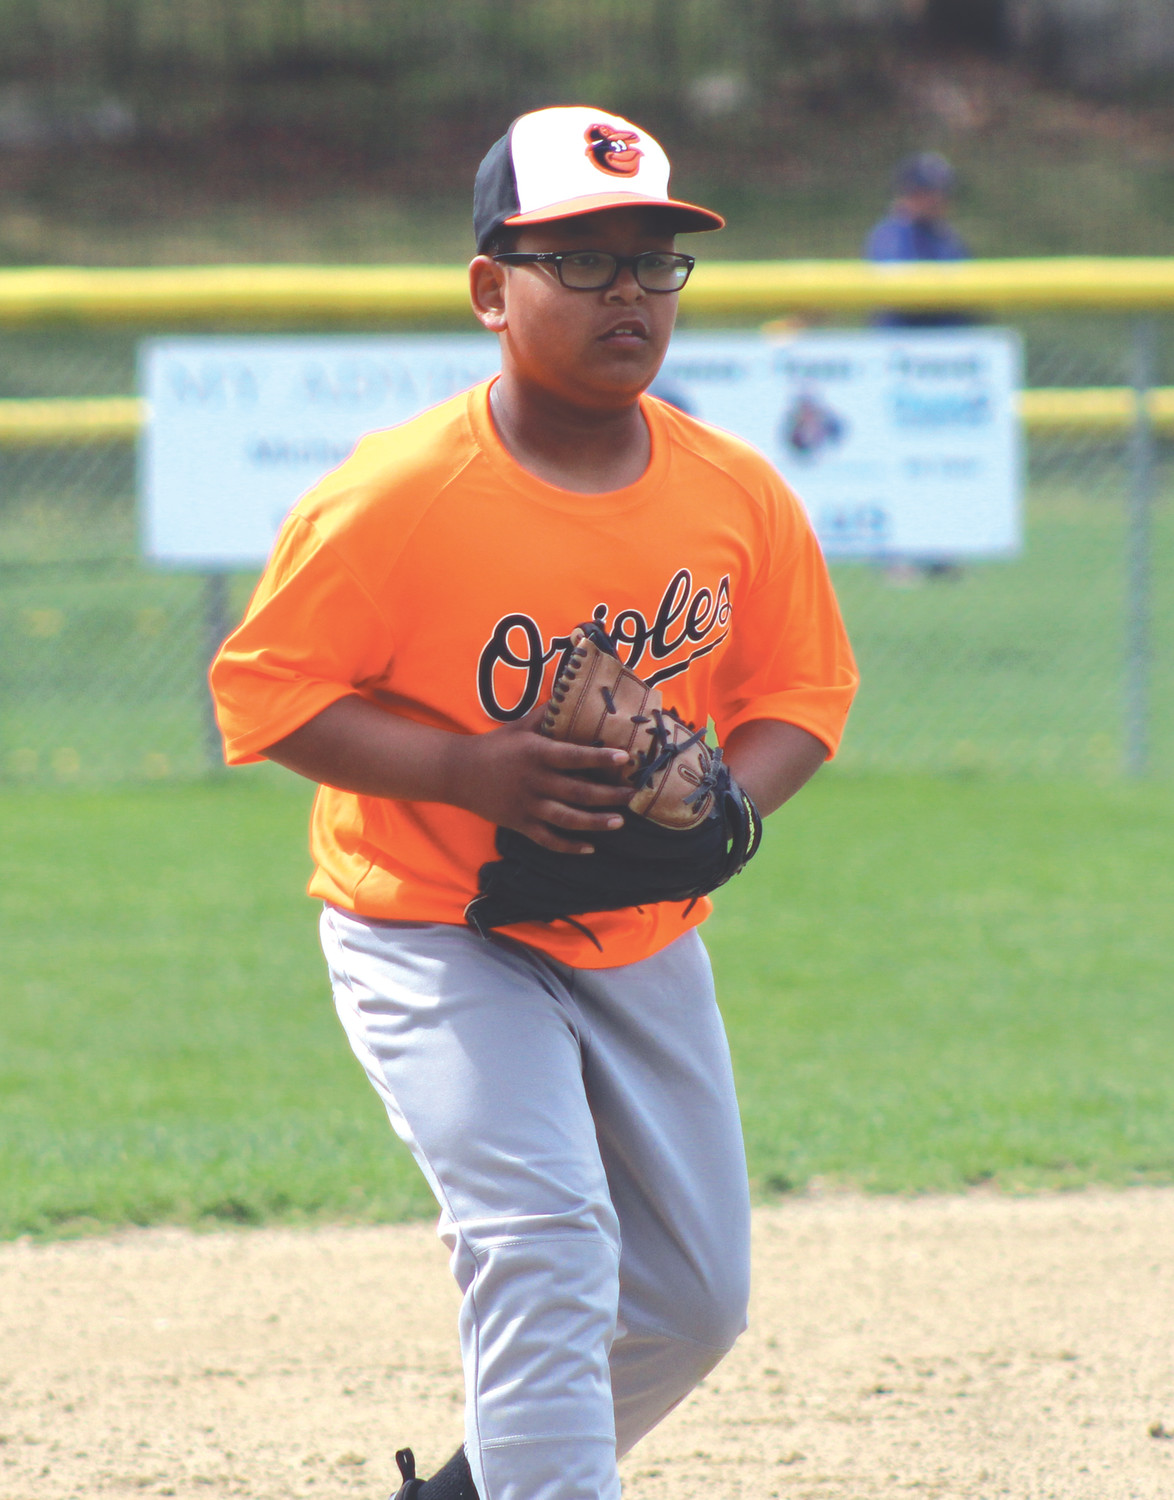 Orioles' Dillon So sets for a ground ball at third base.